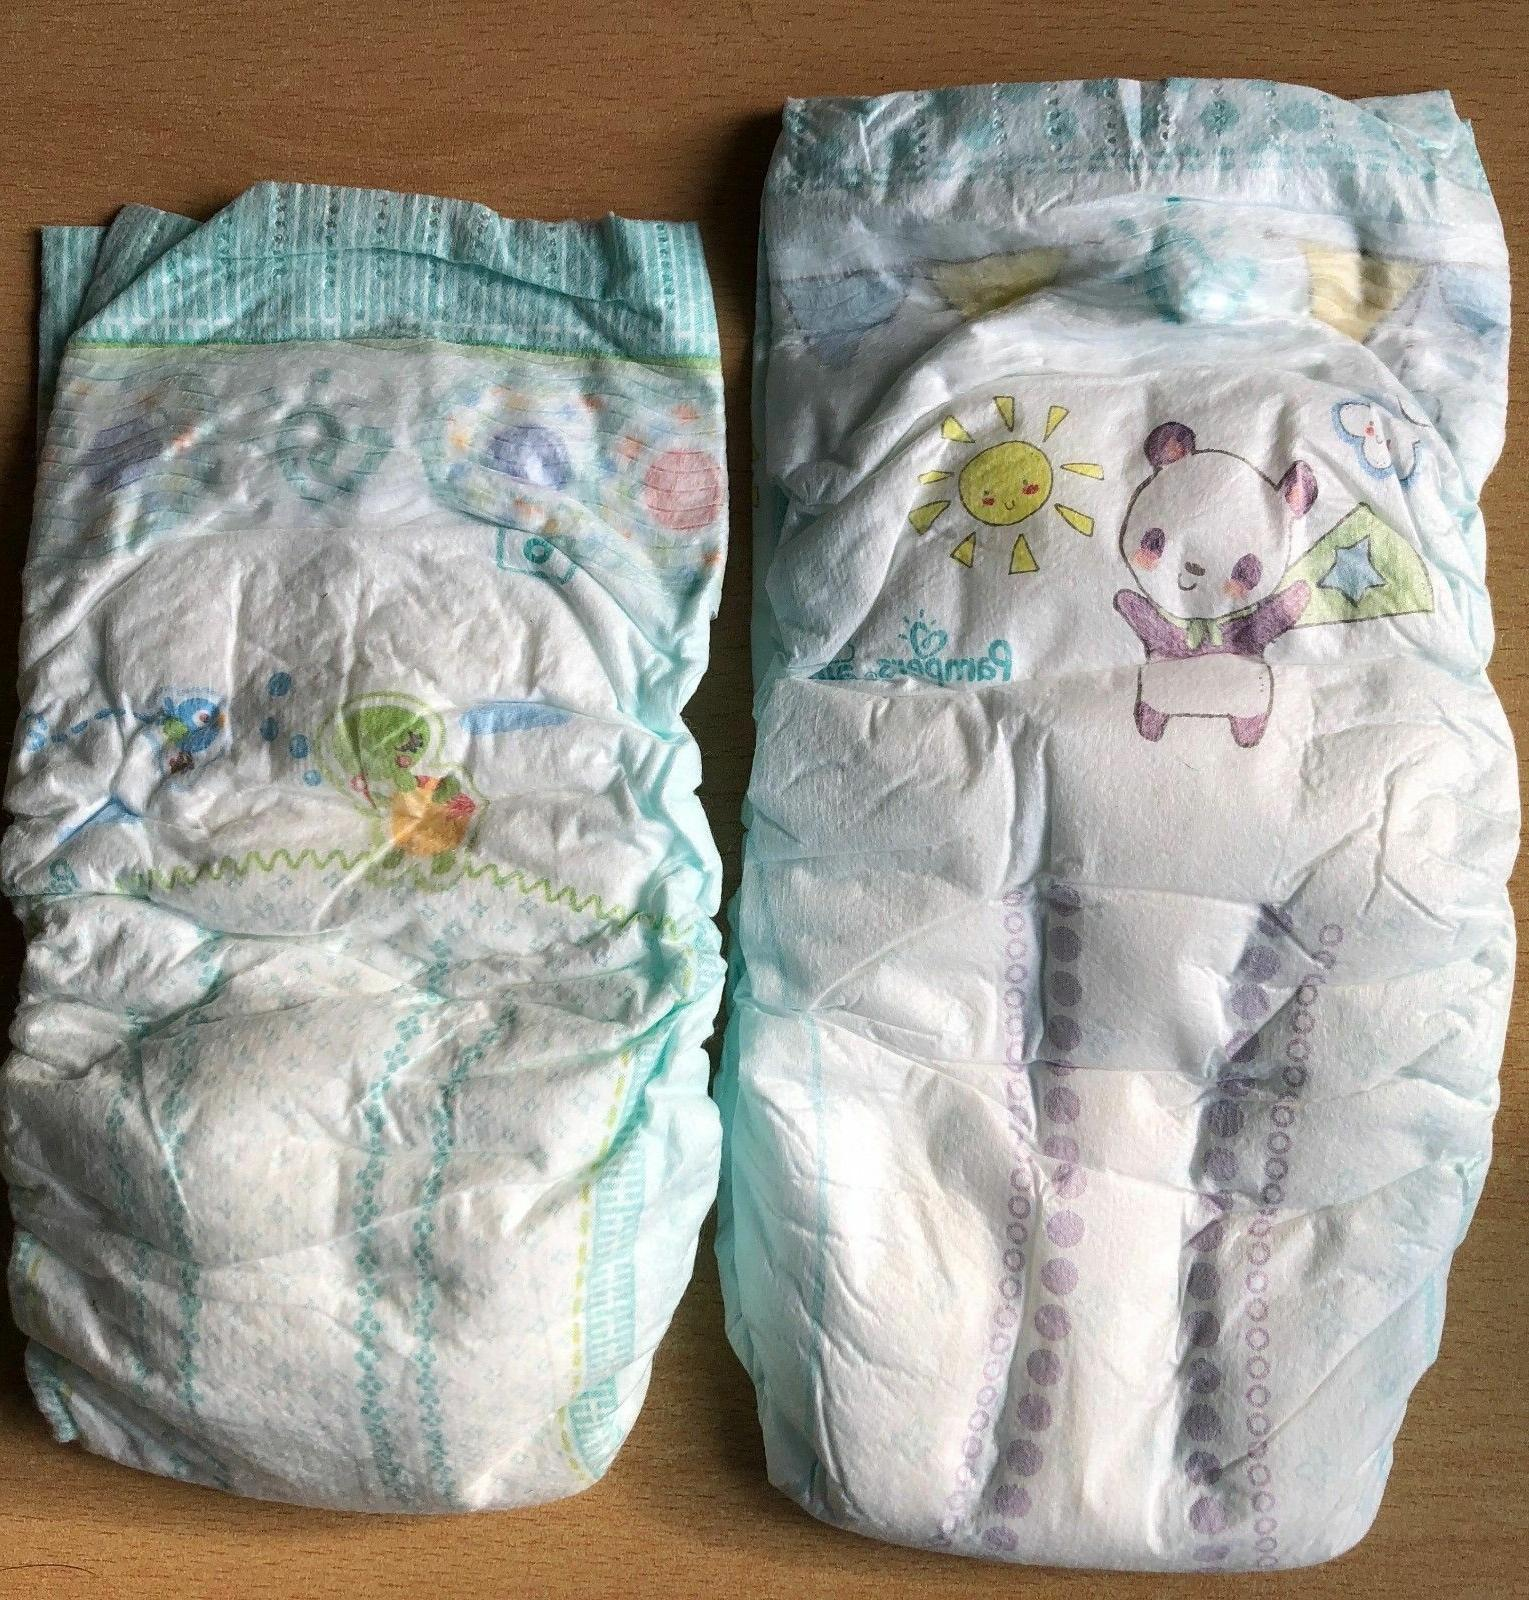 Pampers Baby Dry Size 8 Discrete Shipping